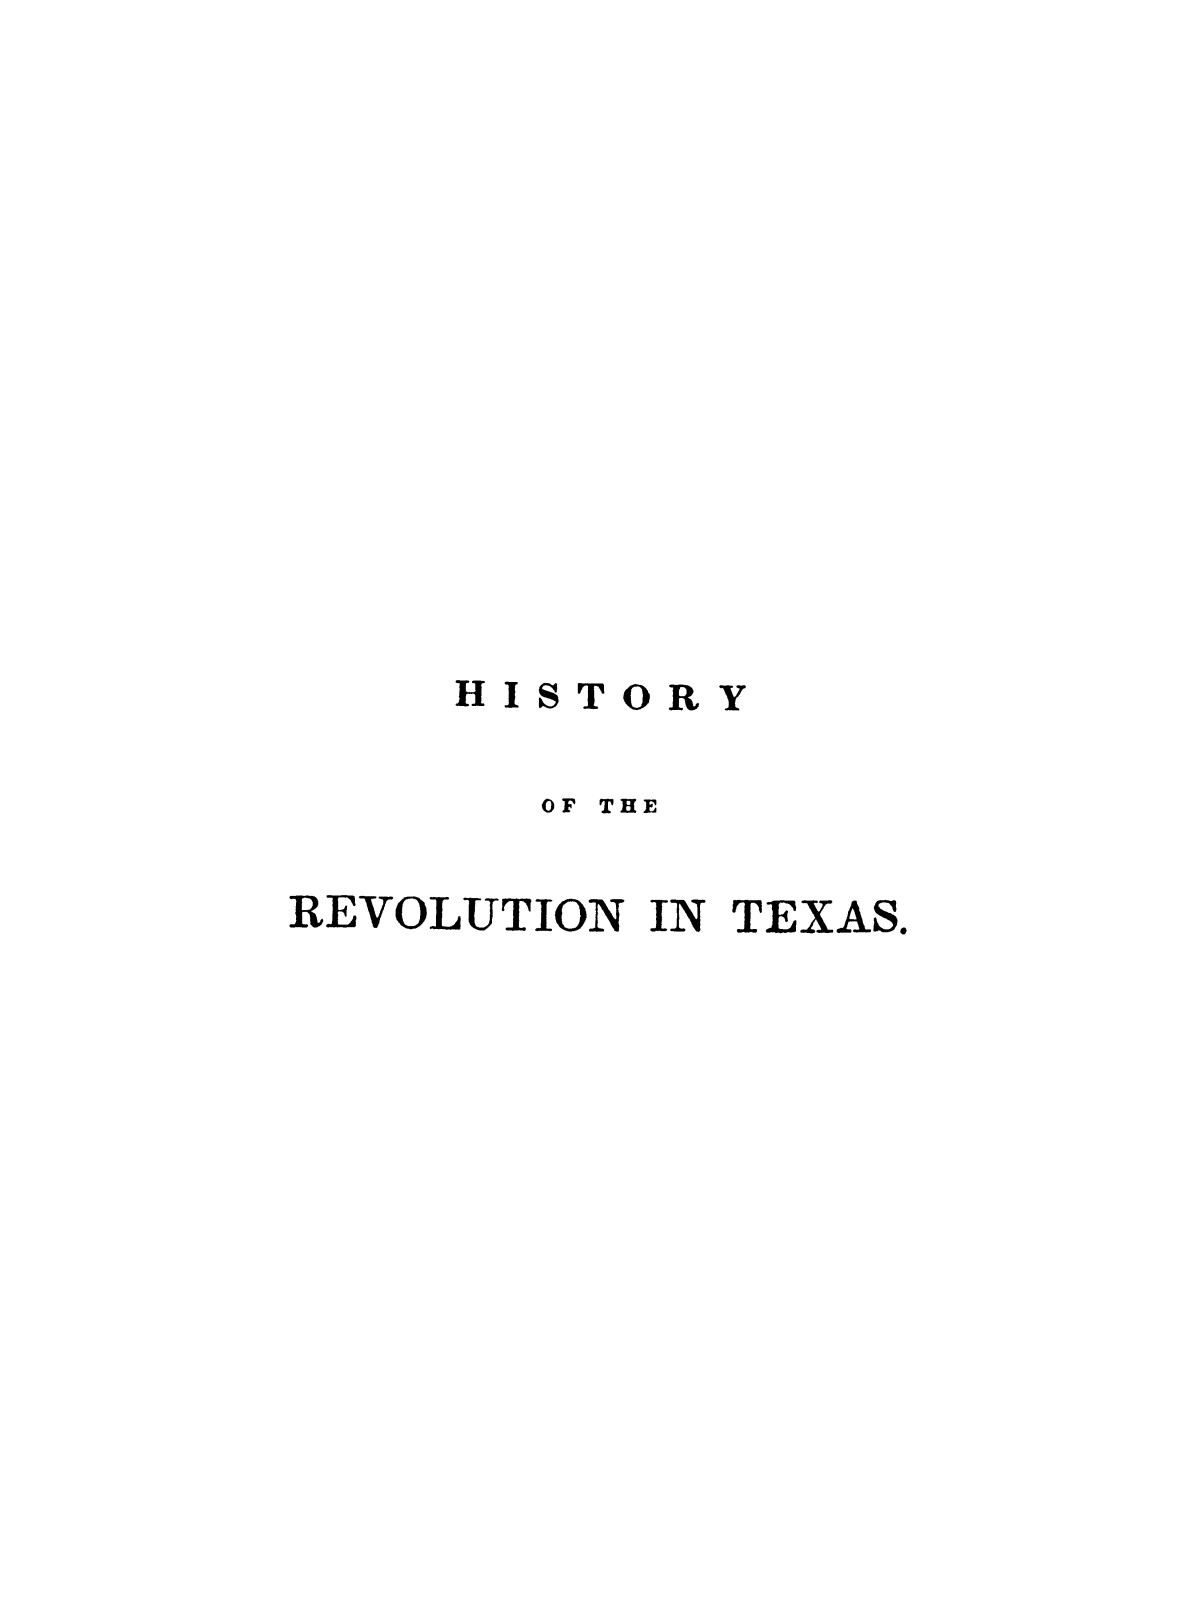 History of the revolution in Texas, particularly of the war of 1835 & '36; together with the latest geographical, topographical, and statistical accounts of the country, from the most authentic sources. Also, an appendix. By the Rev. C. Newell.                                                                                                      [Sequence #]: 13 of 227